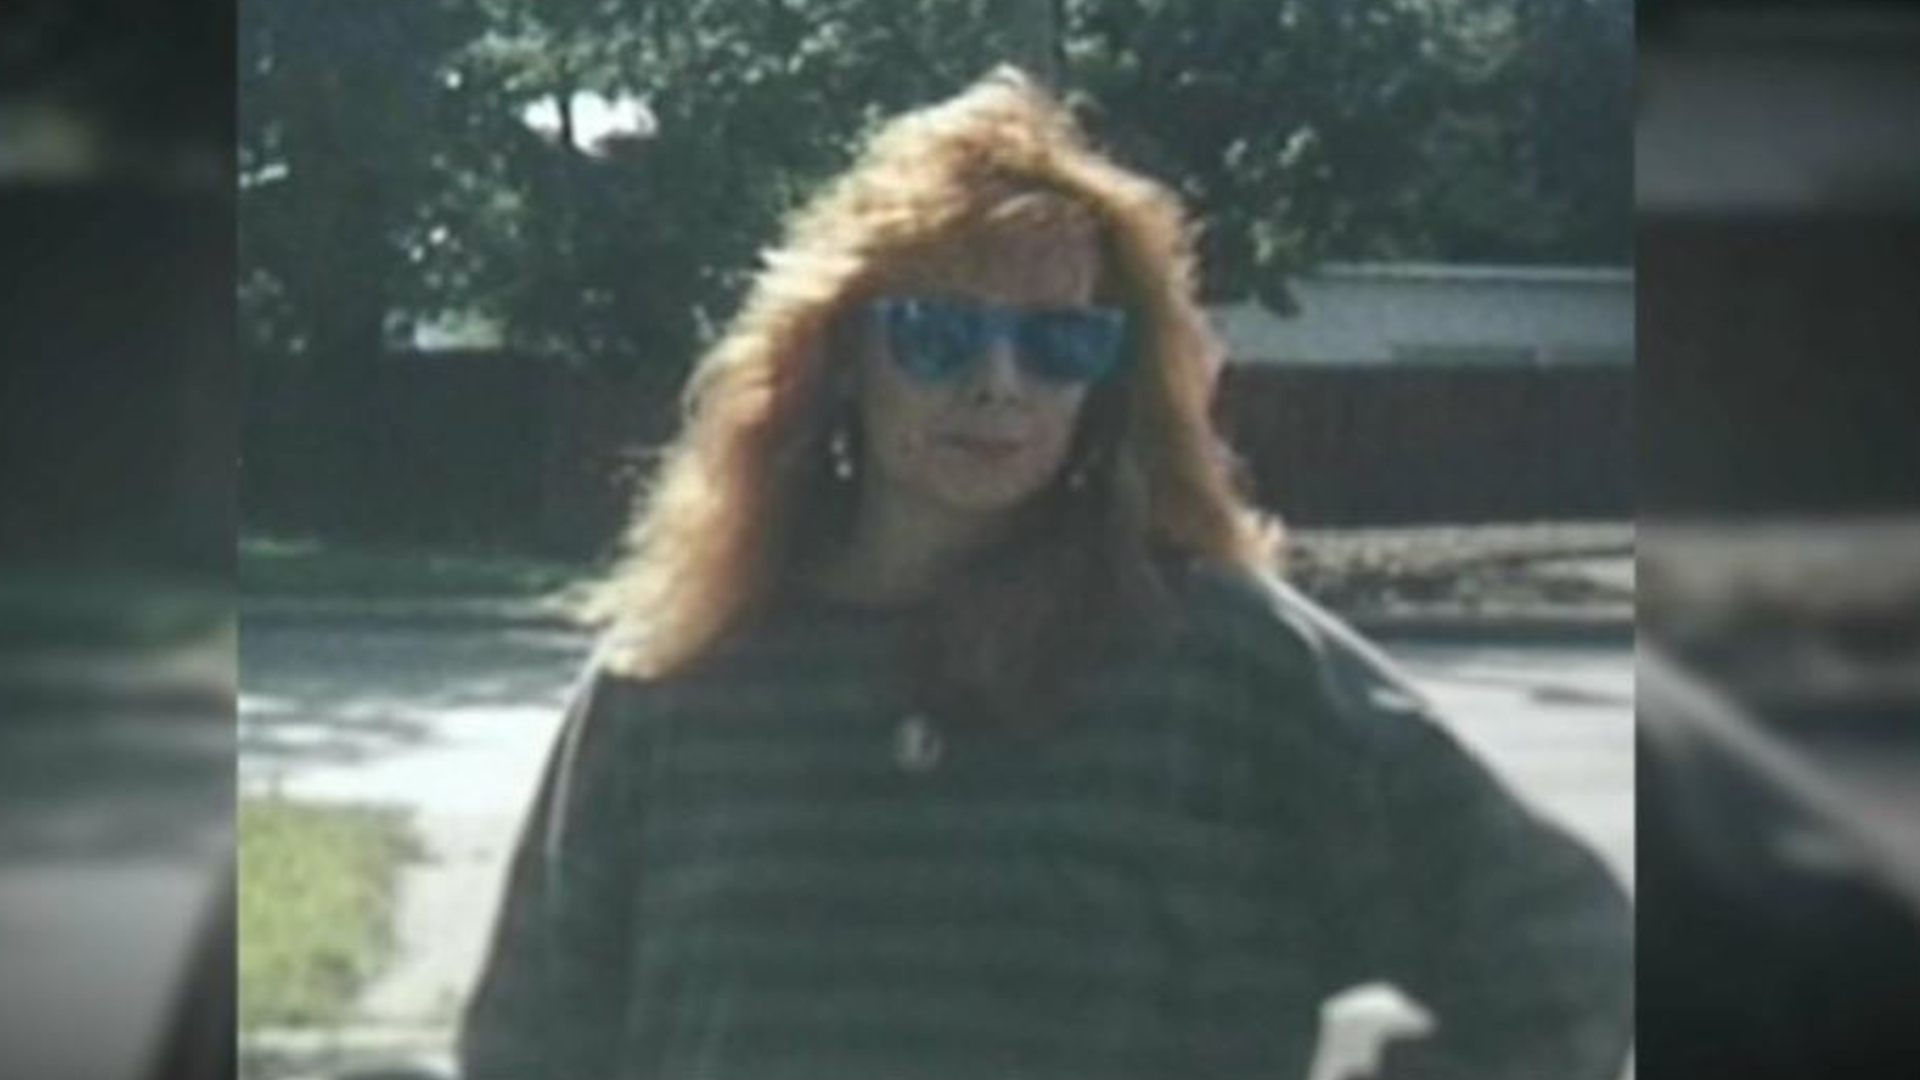 No arrests in murder of Annie Rippel 22 years after body found in New York creek